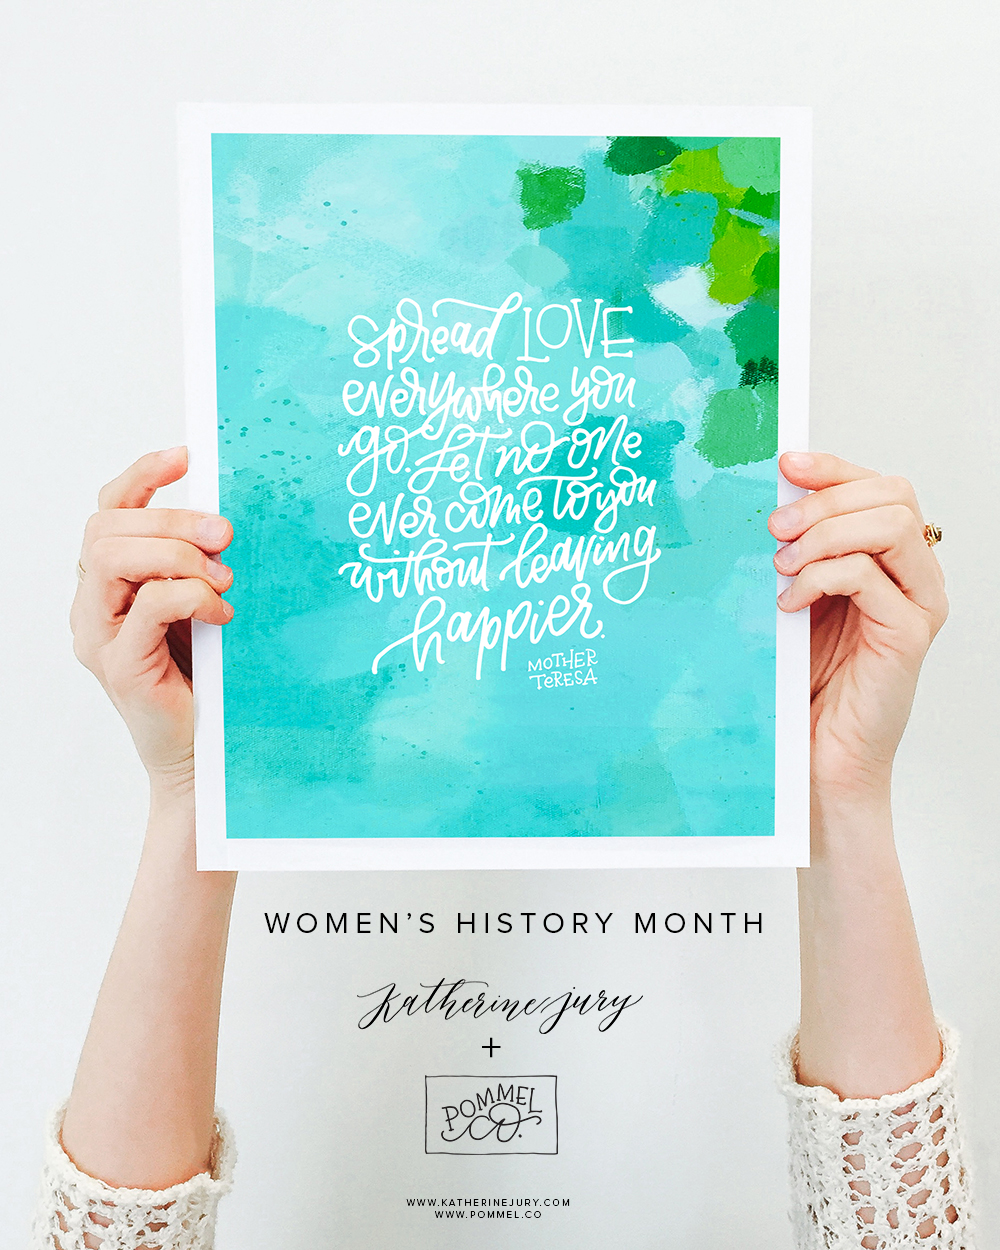 Women's History Month Project by Katherine Jury and Pommel Co.  |  Visit www.katherinejury.com to shop the collection!  #womenshistorymonth #motherteresa #print